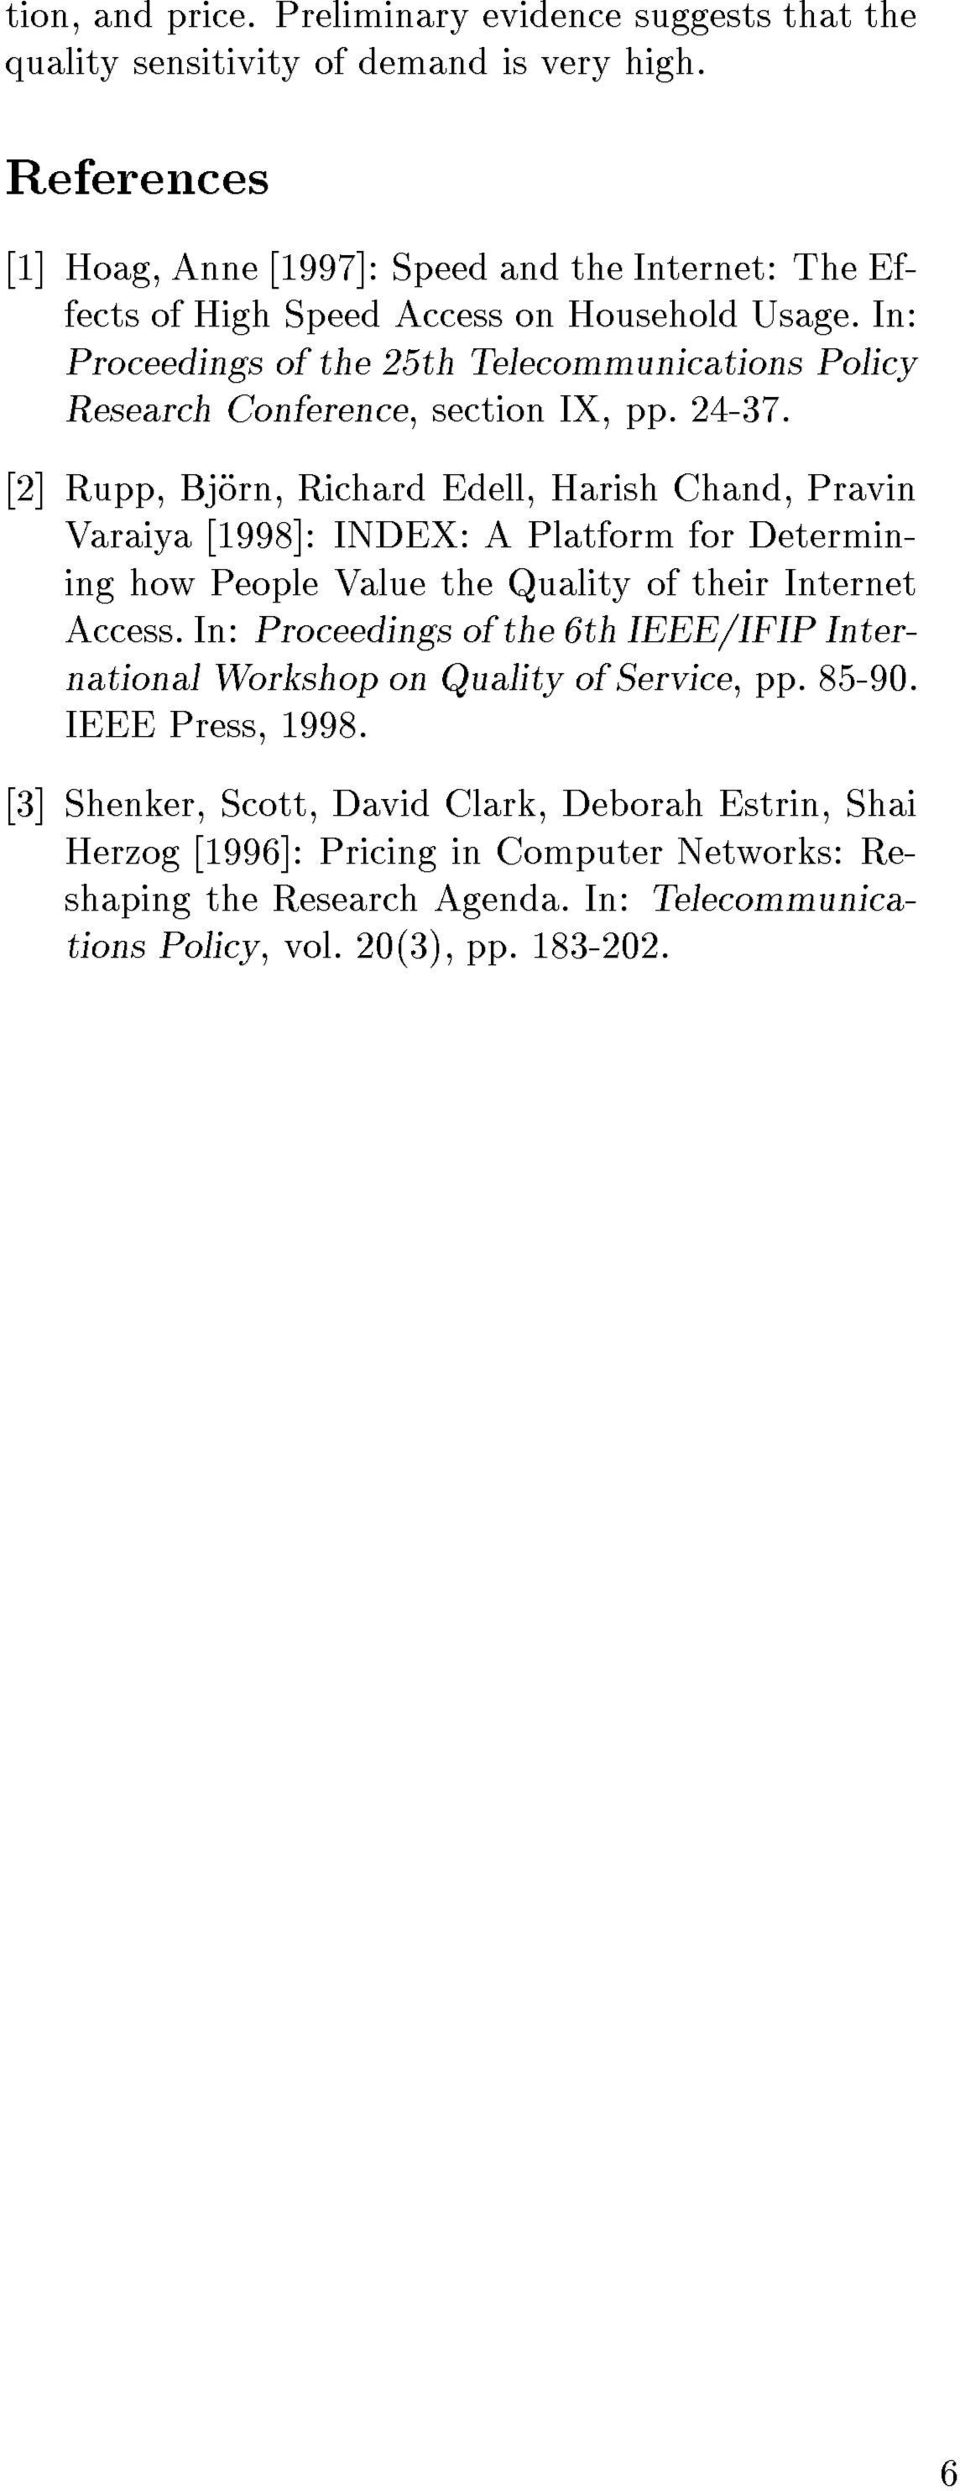 In: Proceedings of the 25th Telecommunications Policy Research Conference, section IX, pp. 24-37.